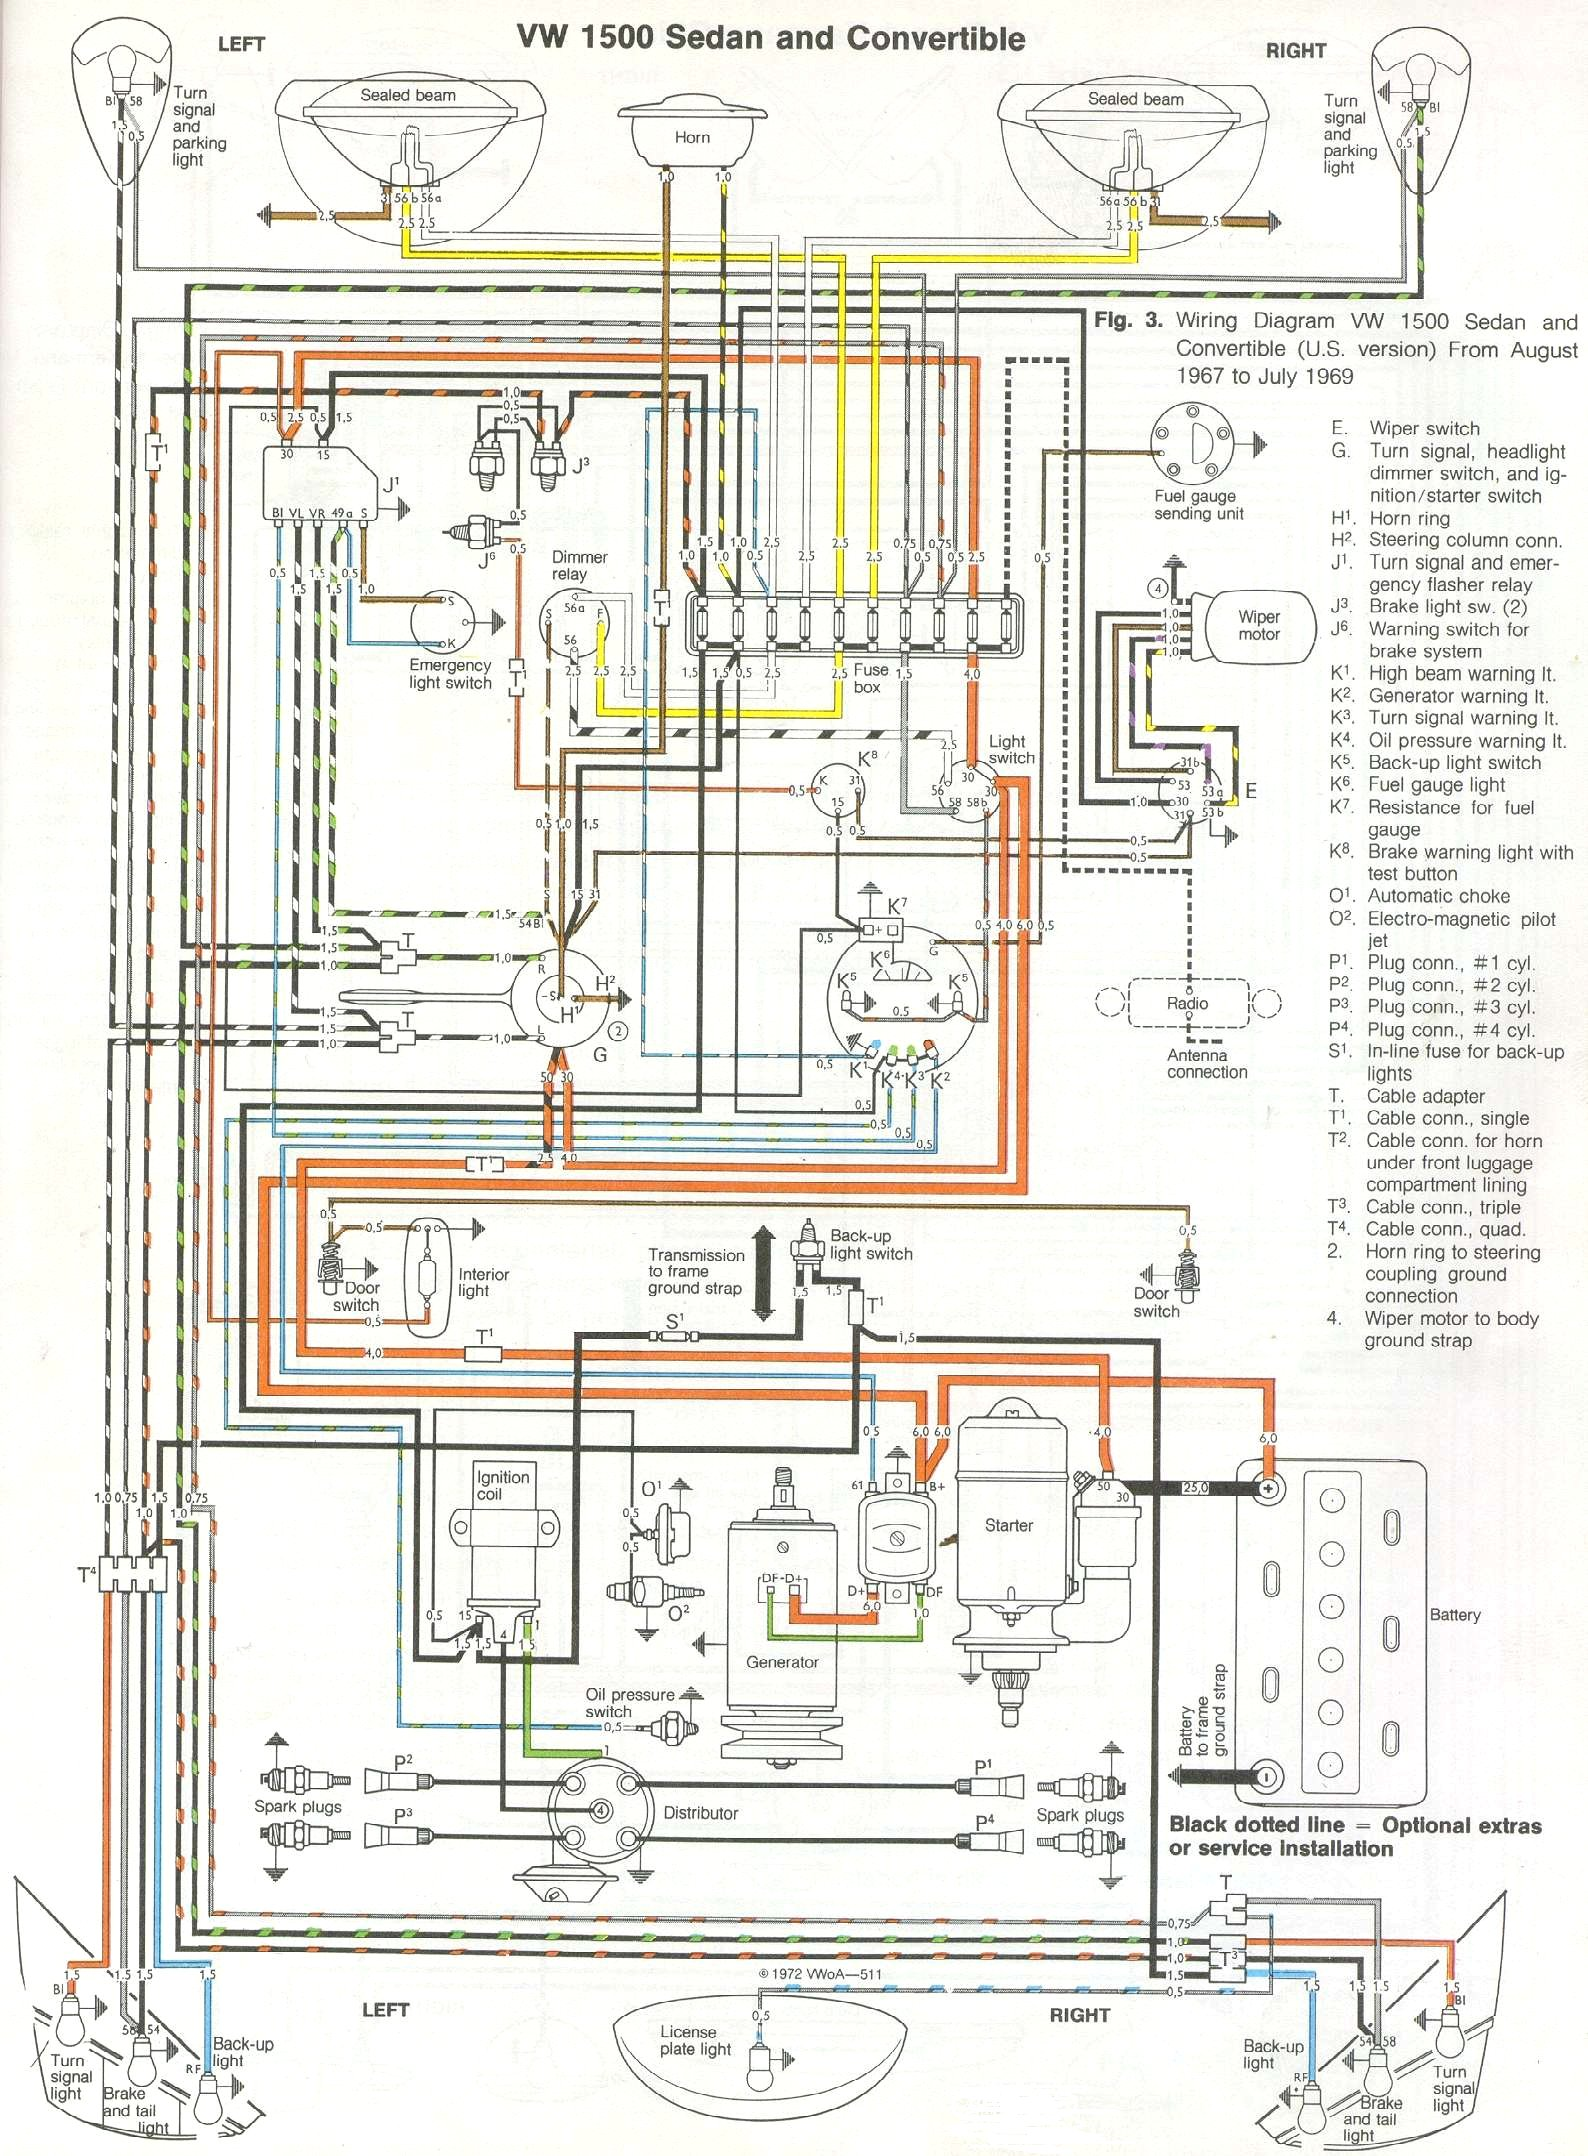 bug_6869 1969 71 beetle wiring diagram thegoldenbug com on 1970 vw beetle wiring diagram